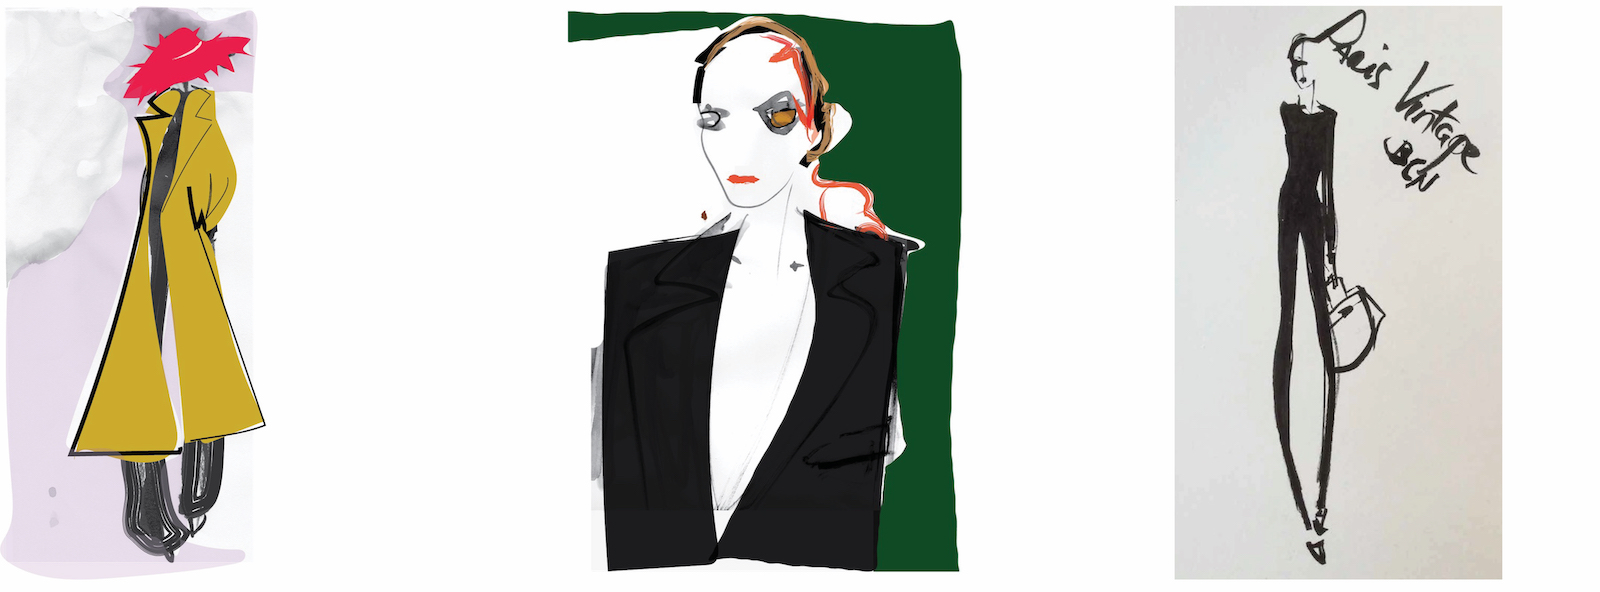 fashion illustration examples 1 2